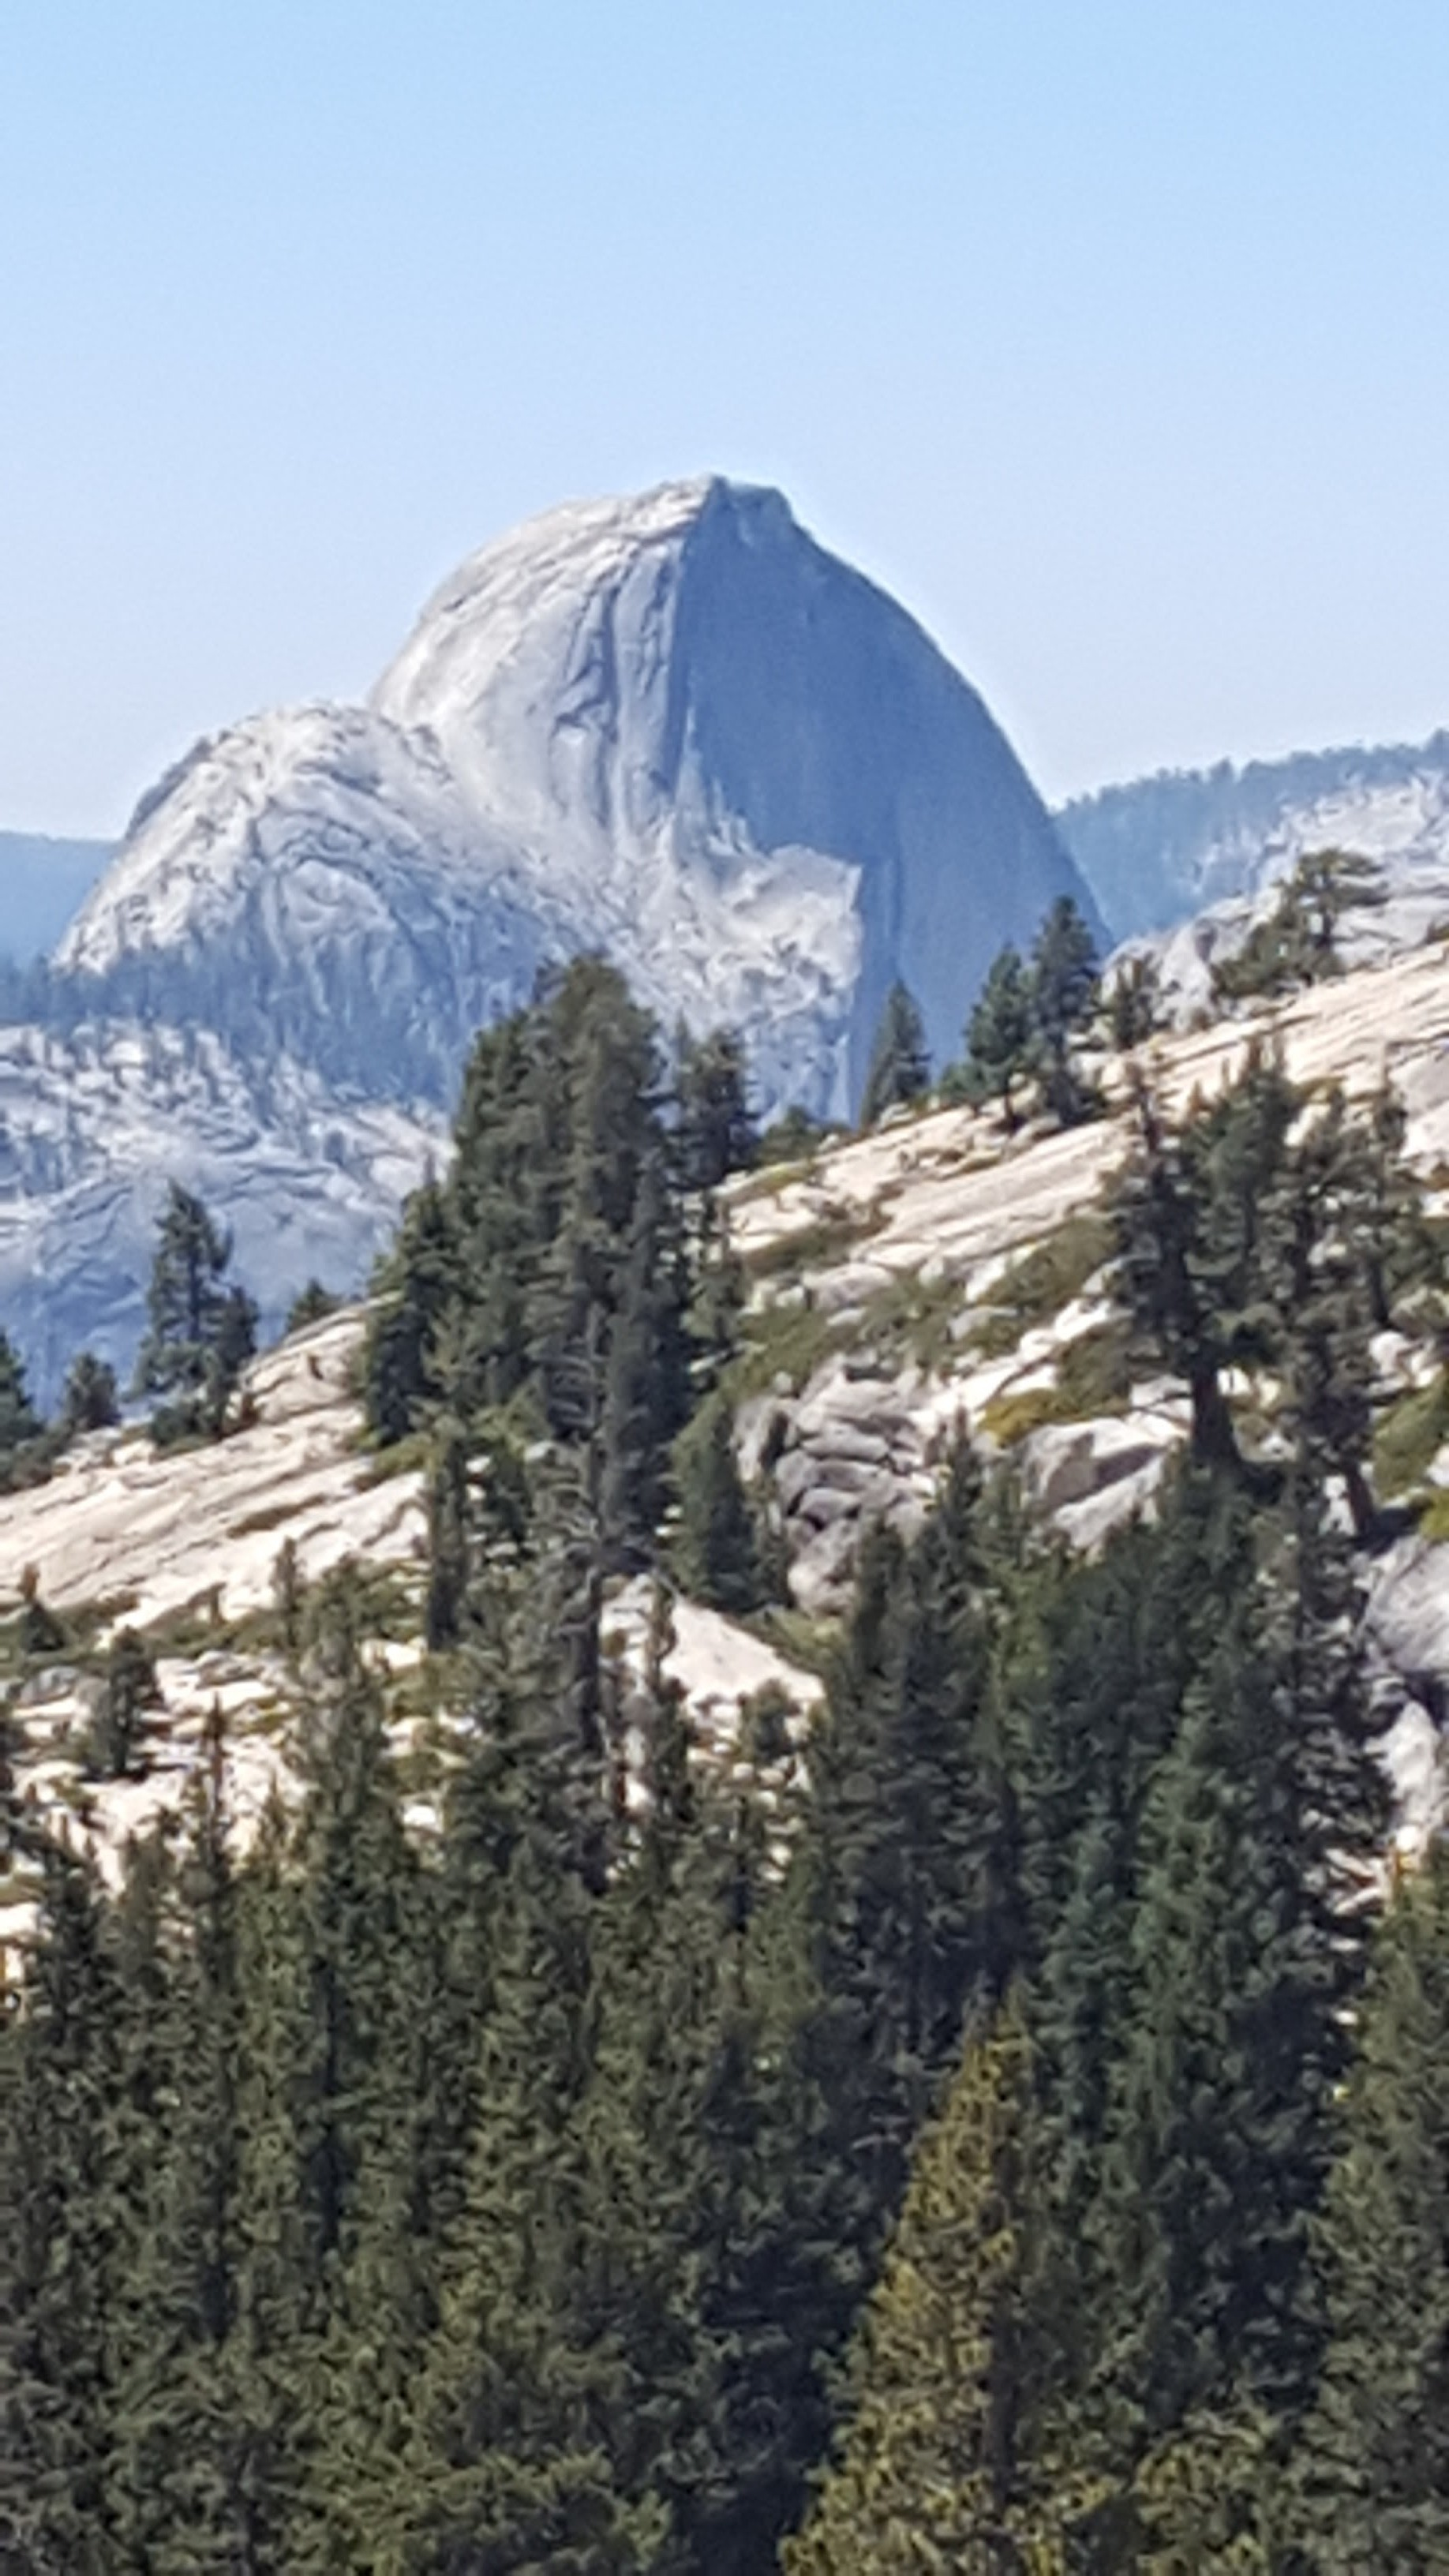 The Yosemite « Eliot's Eats